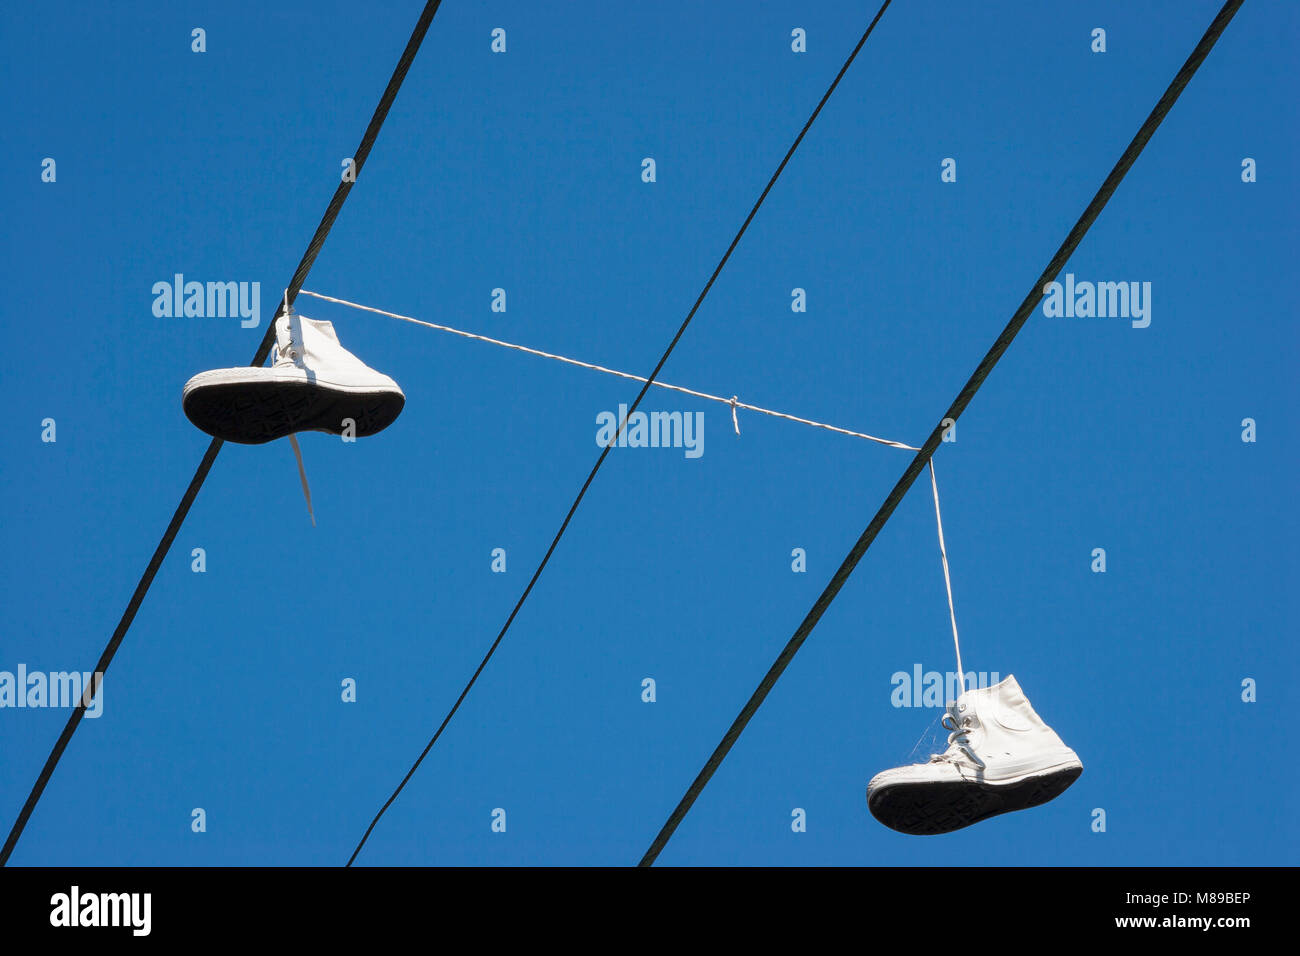 Shoes hanging on power wires. Melbourne, Australia. - Stock Image